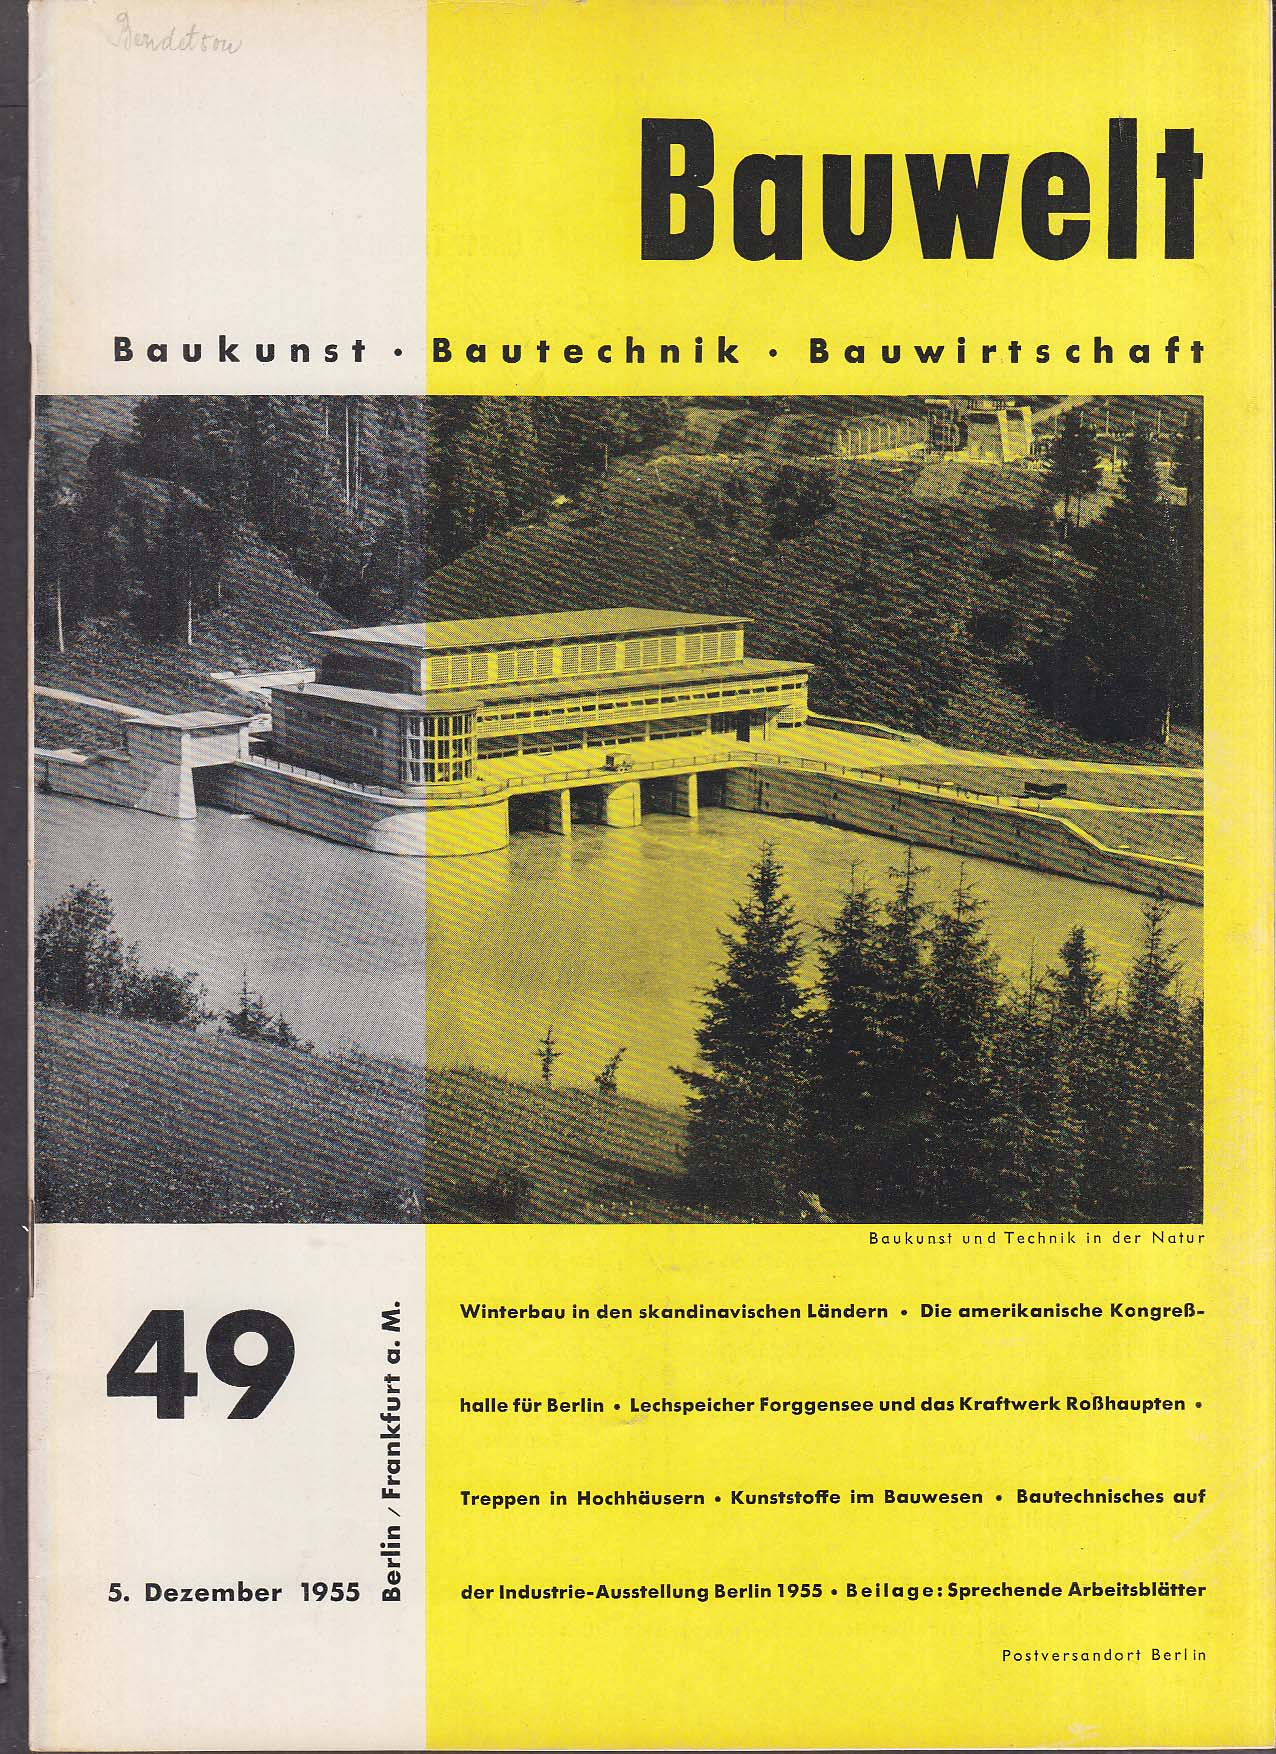 Bauwelt German architecture magazine 12/5/1955 49